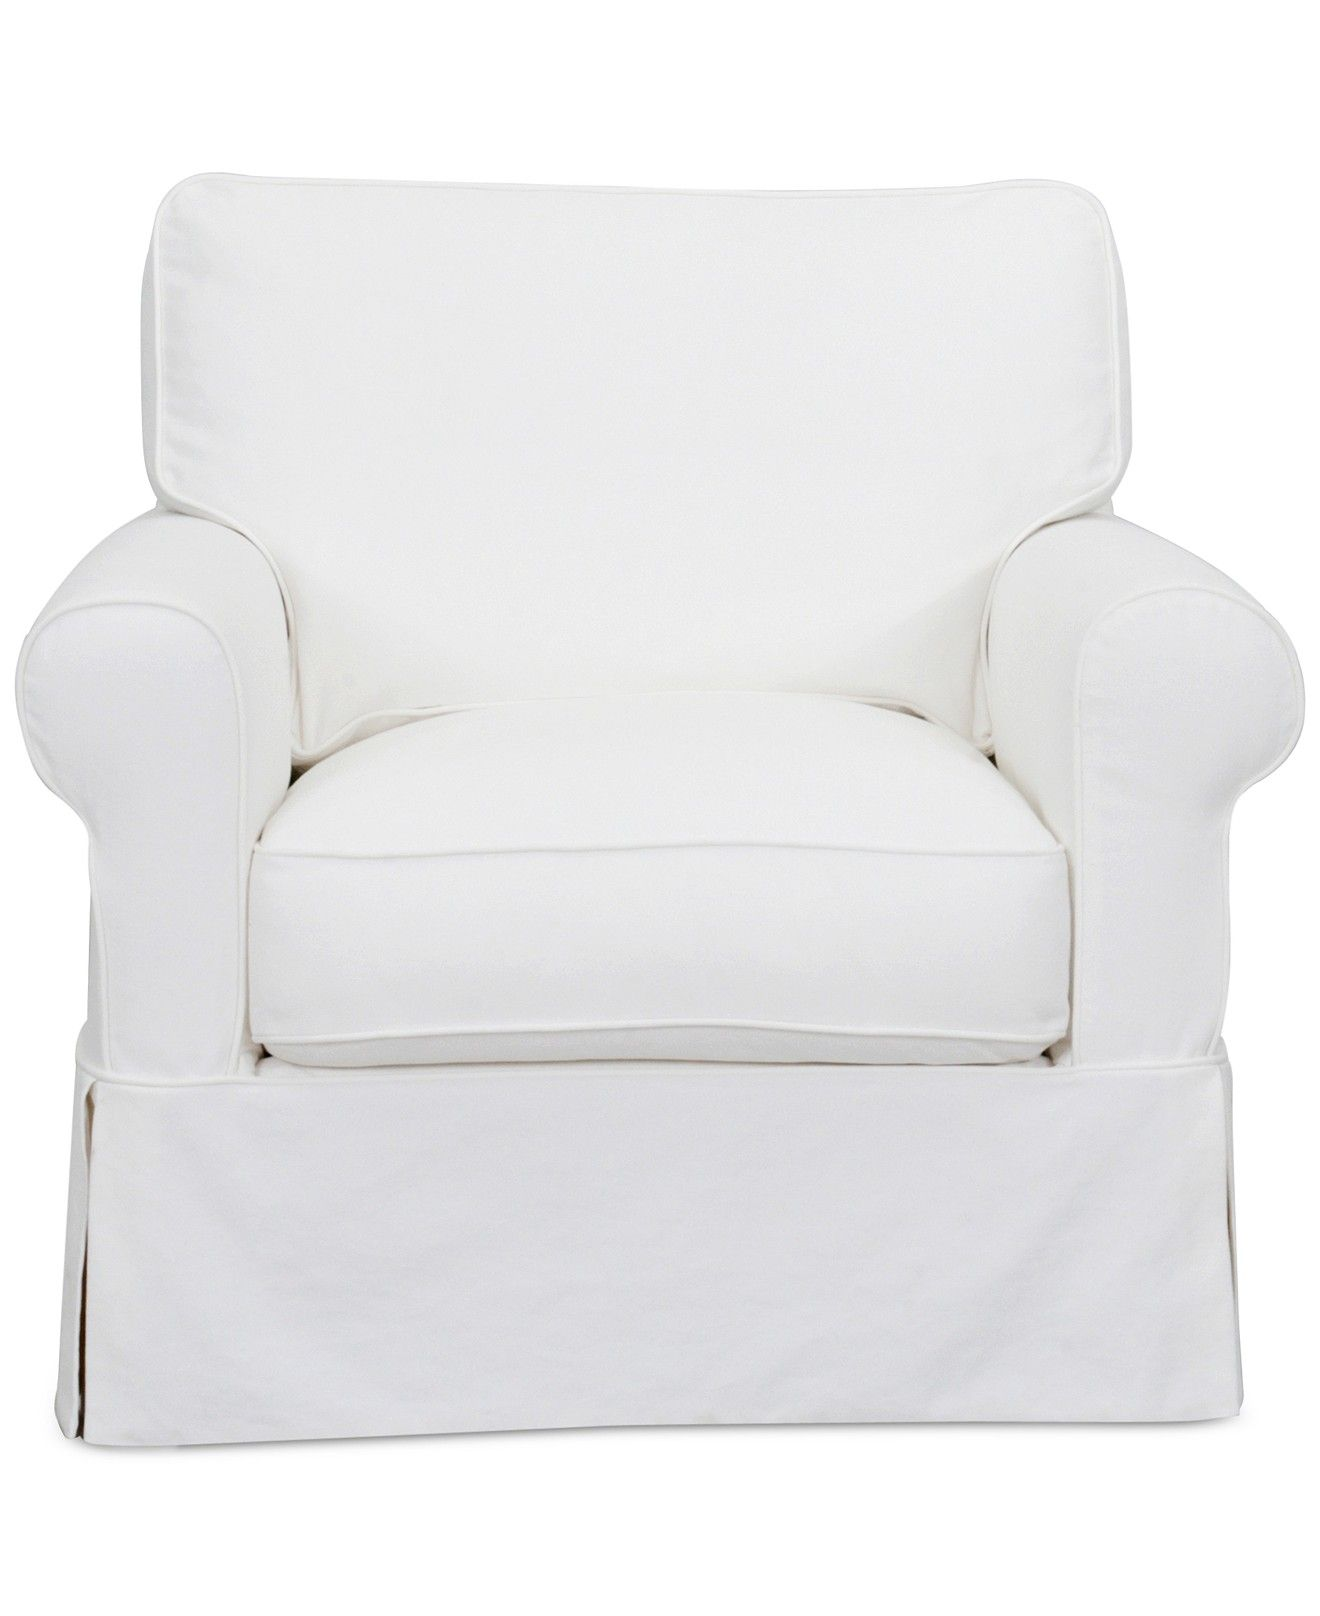 Leanne Fabric Slipcover Chair Furniture Macy s